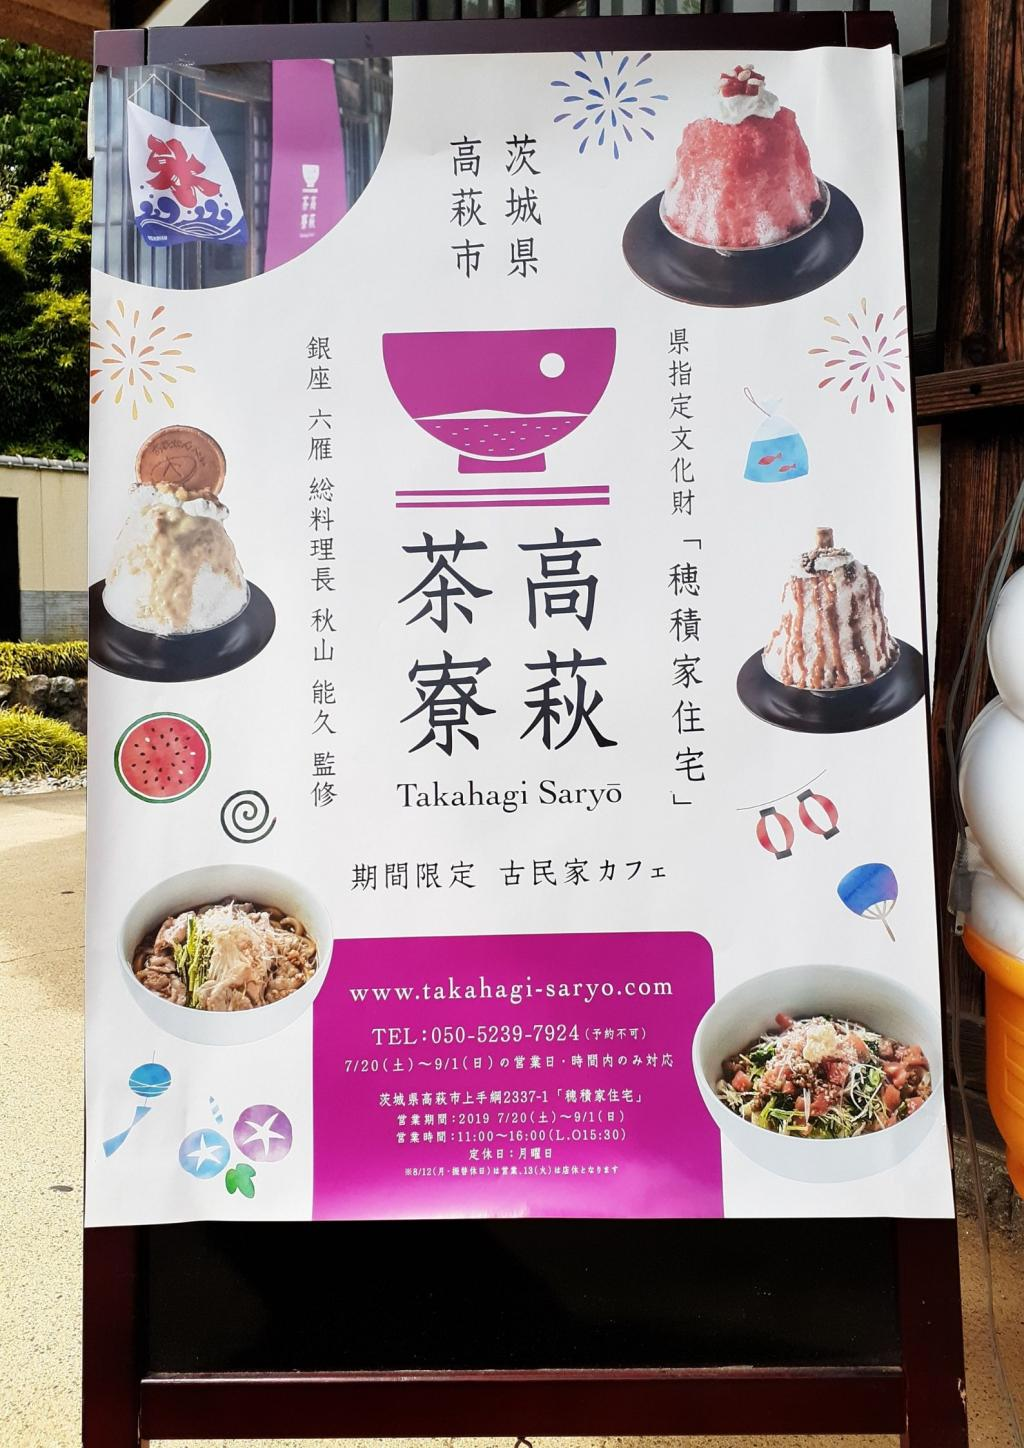 Discover Chuo City:茨城・高萩市の古民家で出会った銀座の名店「六雁」